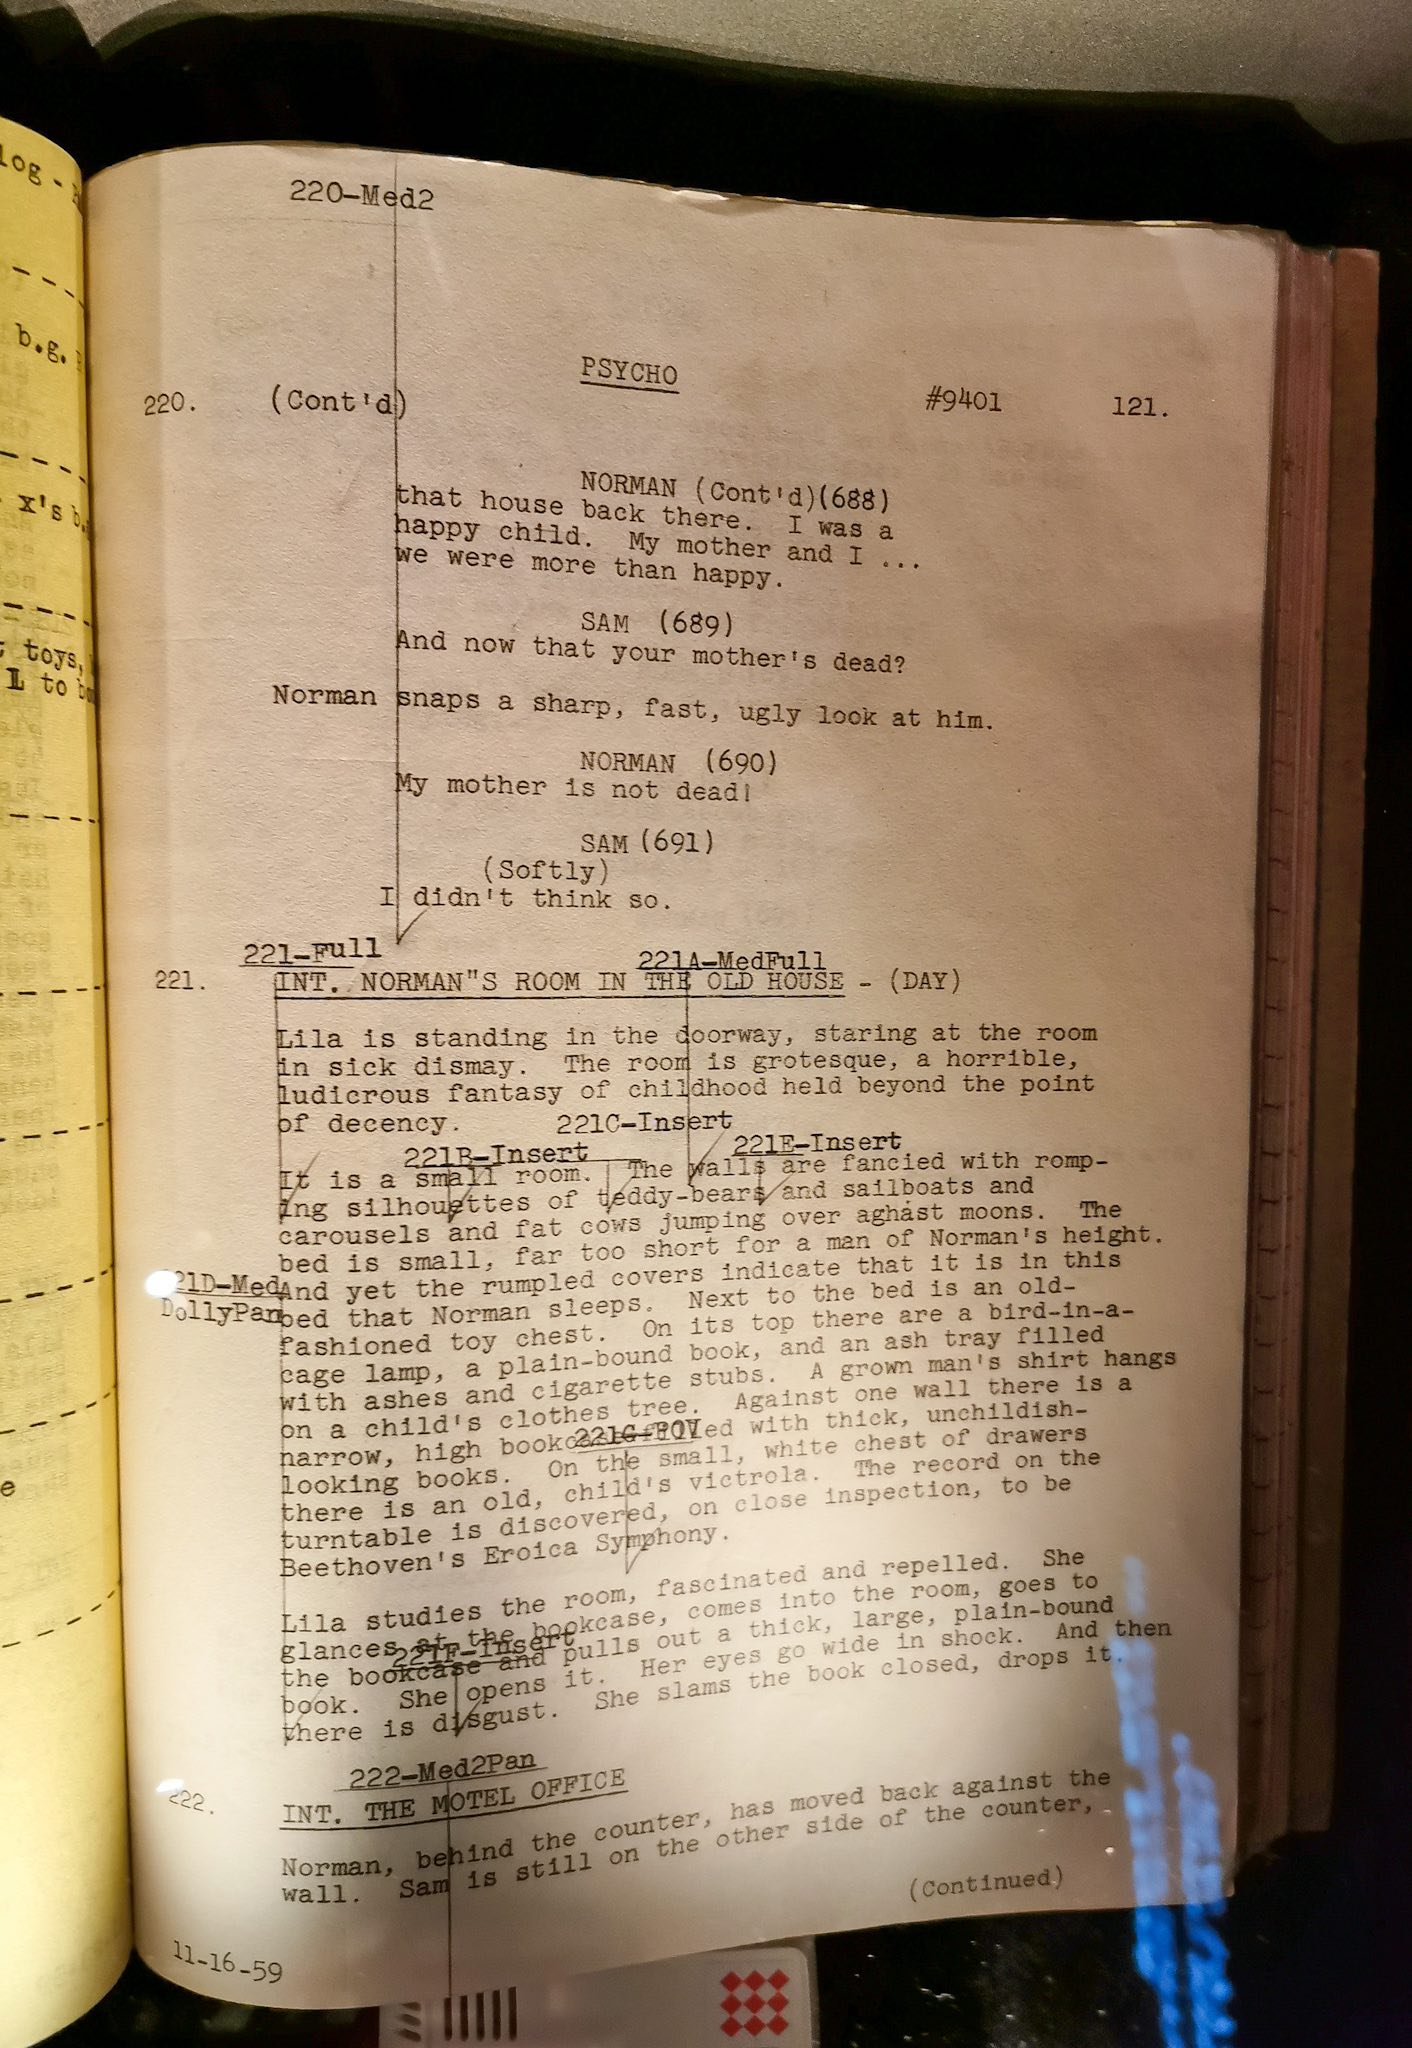 A page from the original script of the movie Psycho on display at Turin's National Museum of Cinema